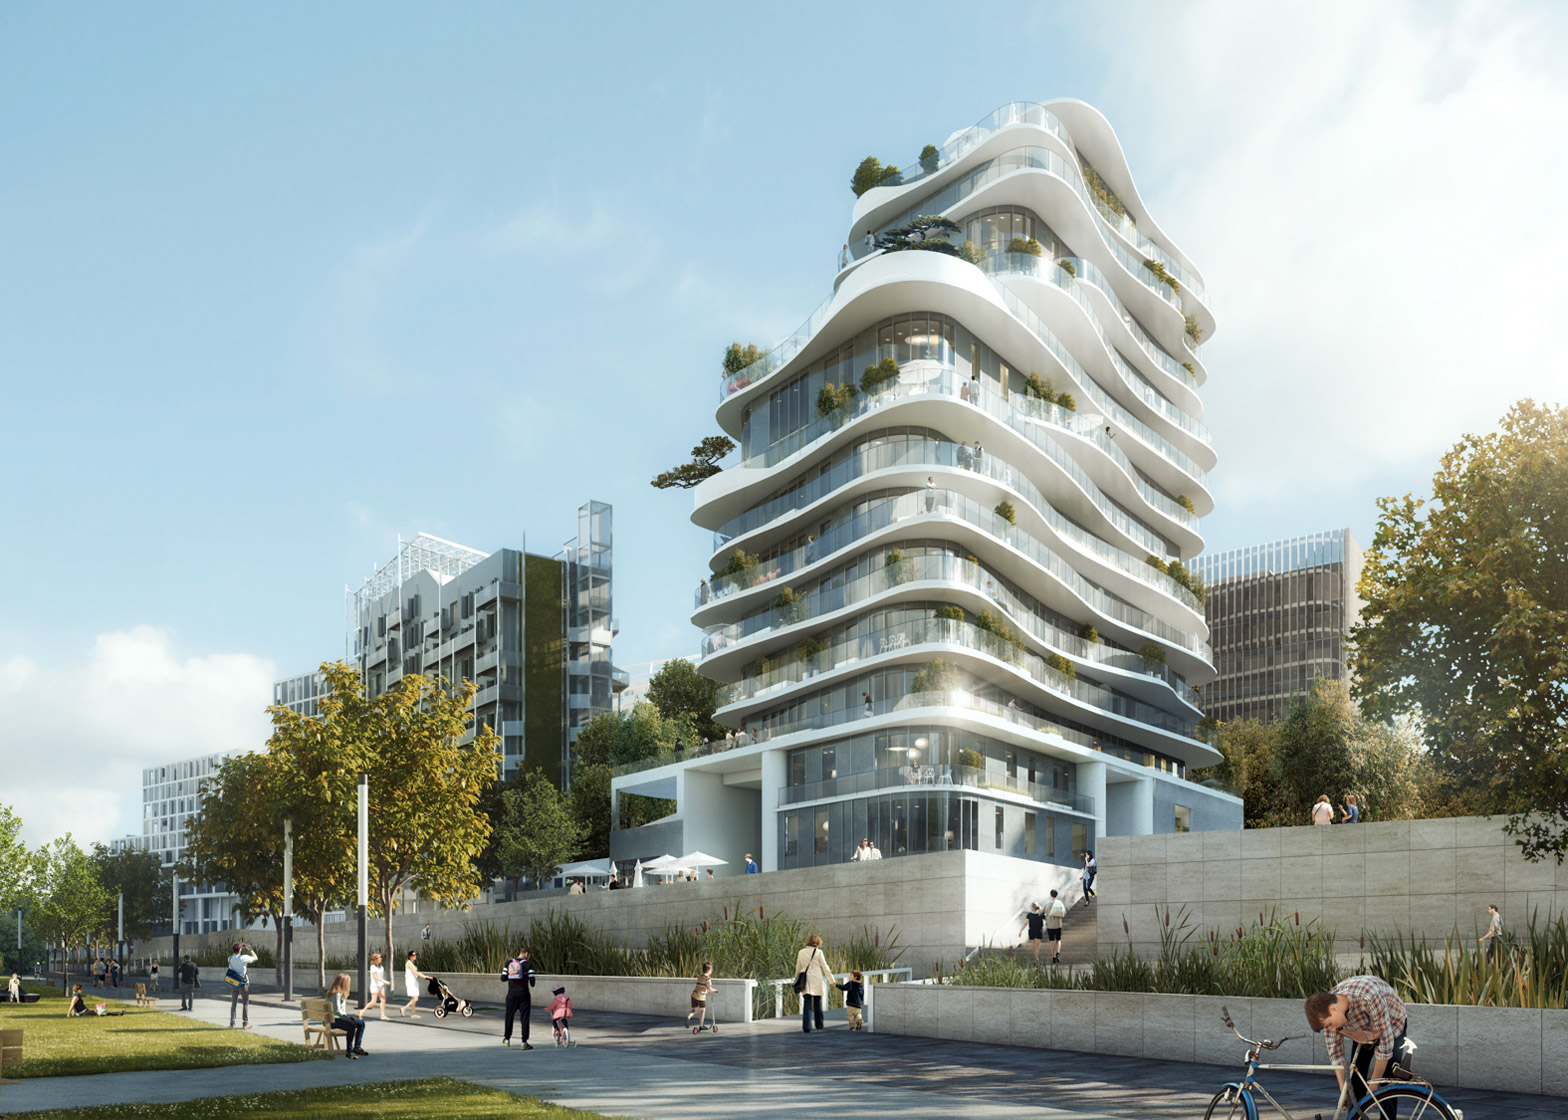 MAD unveils Parisian housing block with curvy floors and balconies